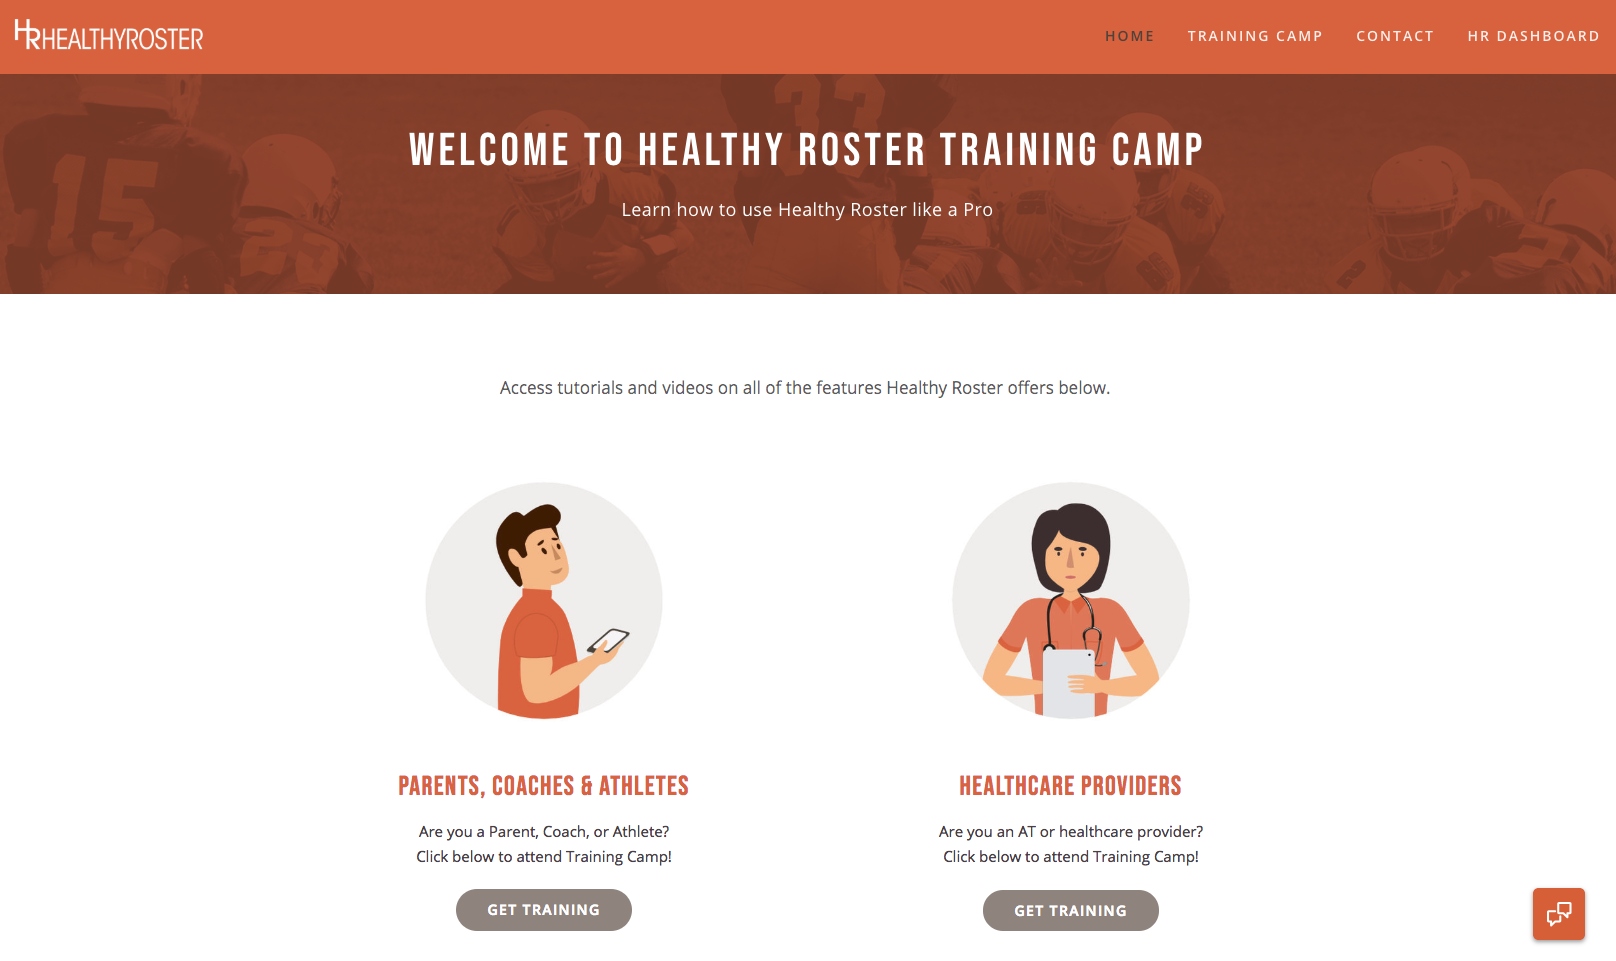 Healthy Roster Training Camp Home Page